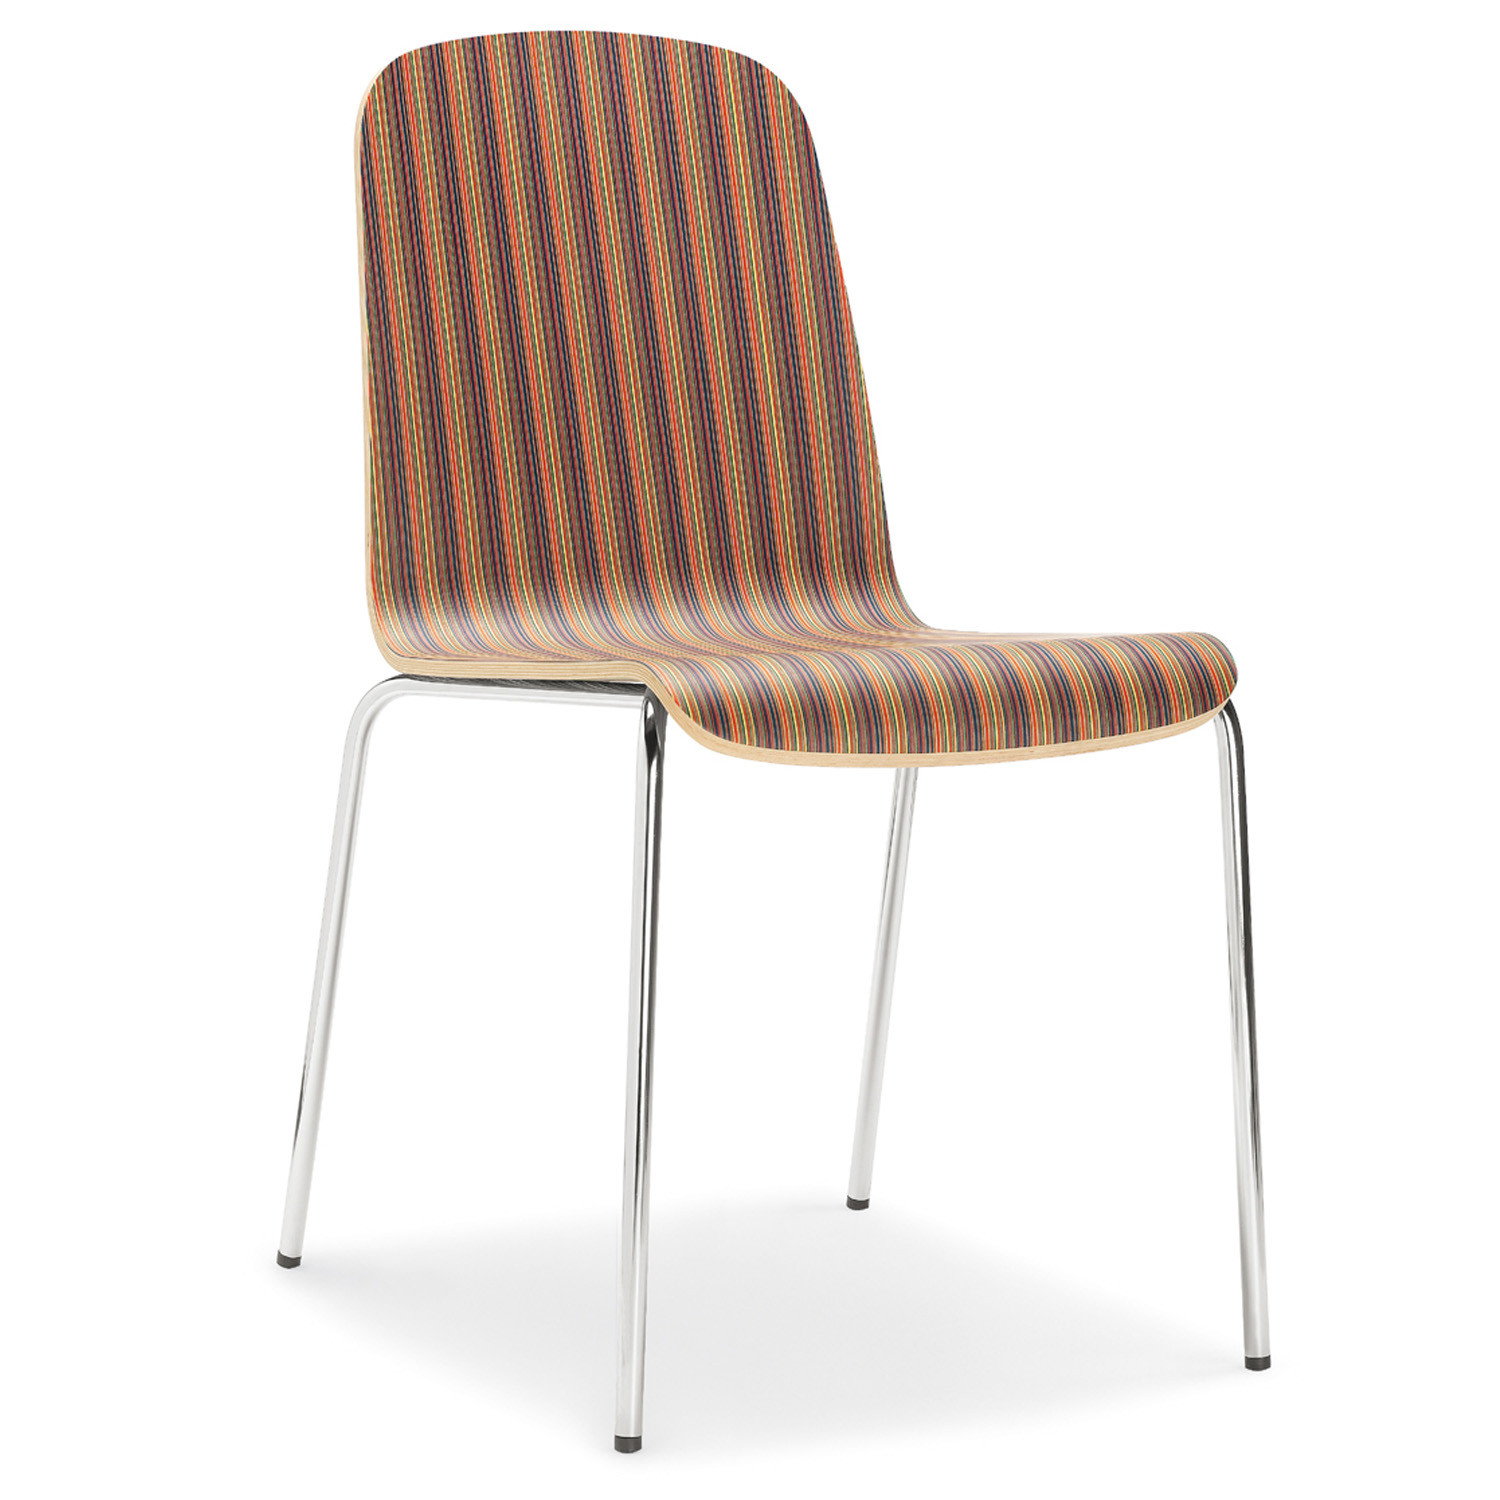 Trend Chair Striped Pattern